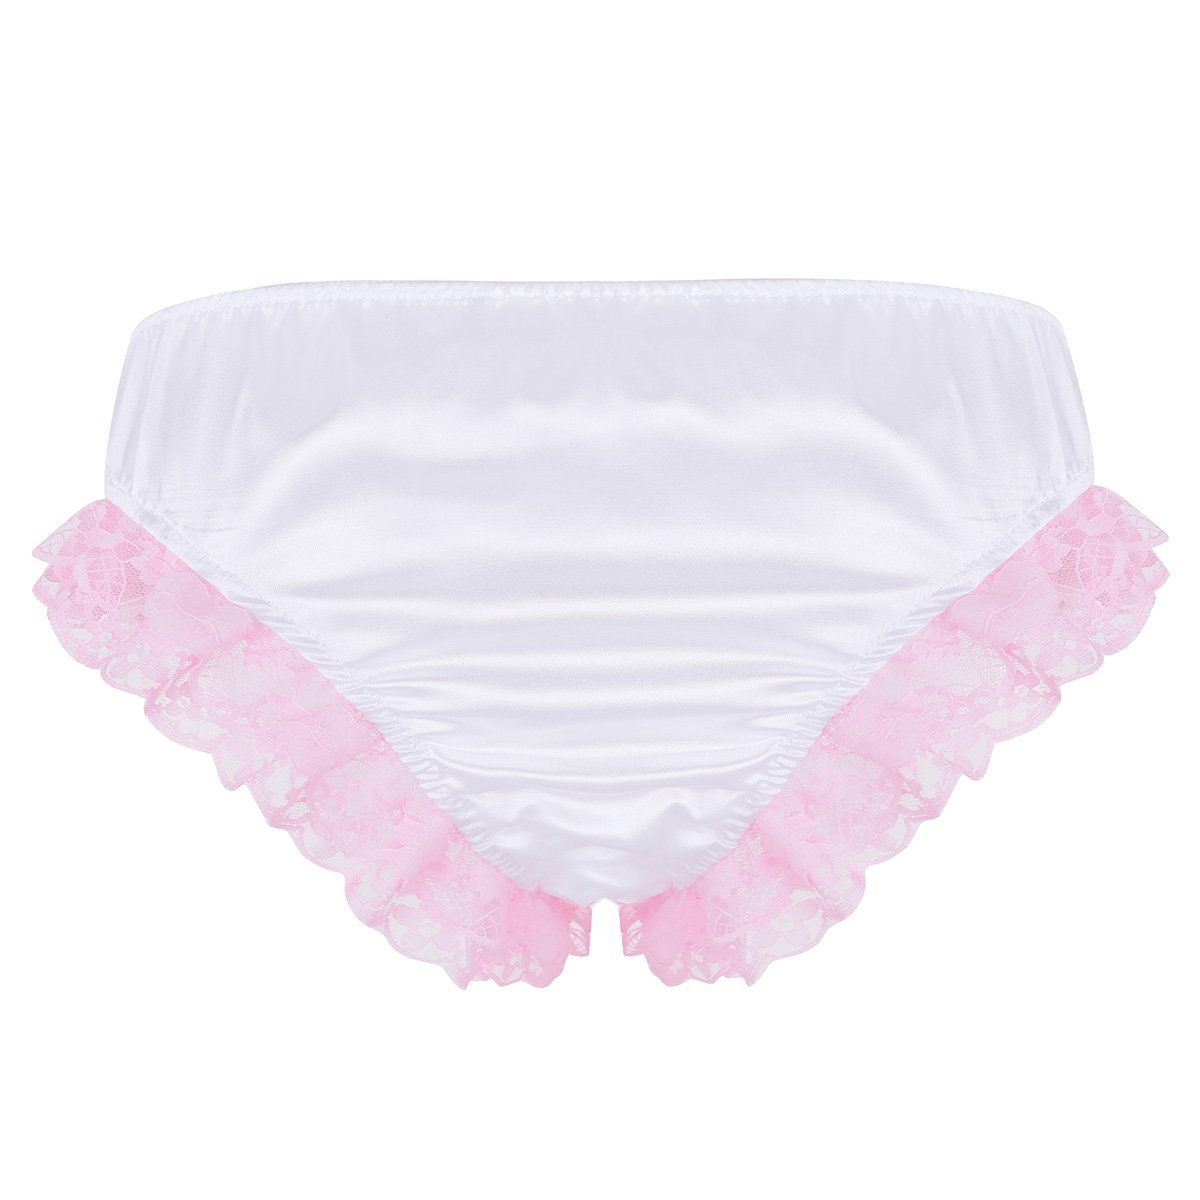 Shiny Ruffles Floral Lace with Bowknots Briefs Sissy Panty Shop